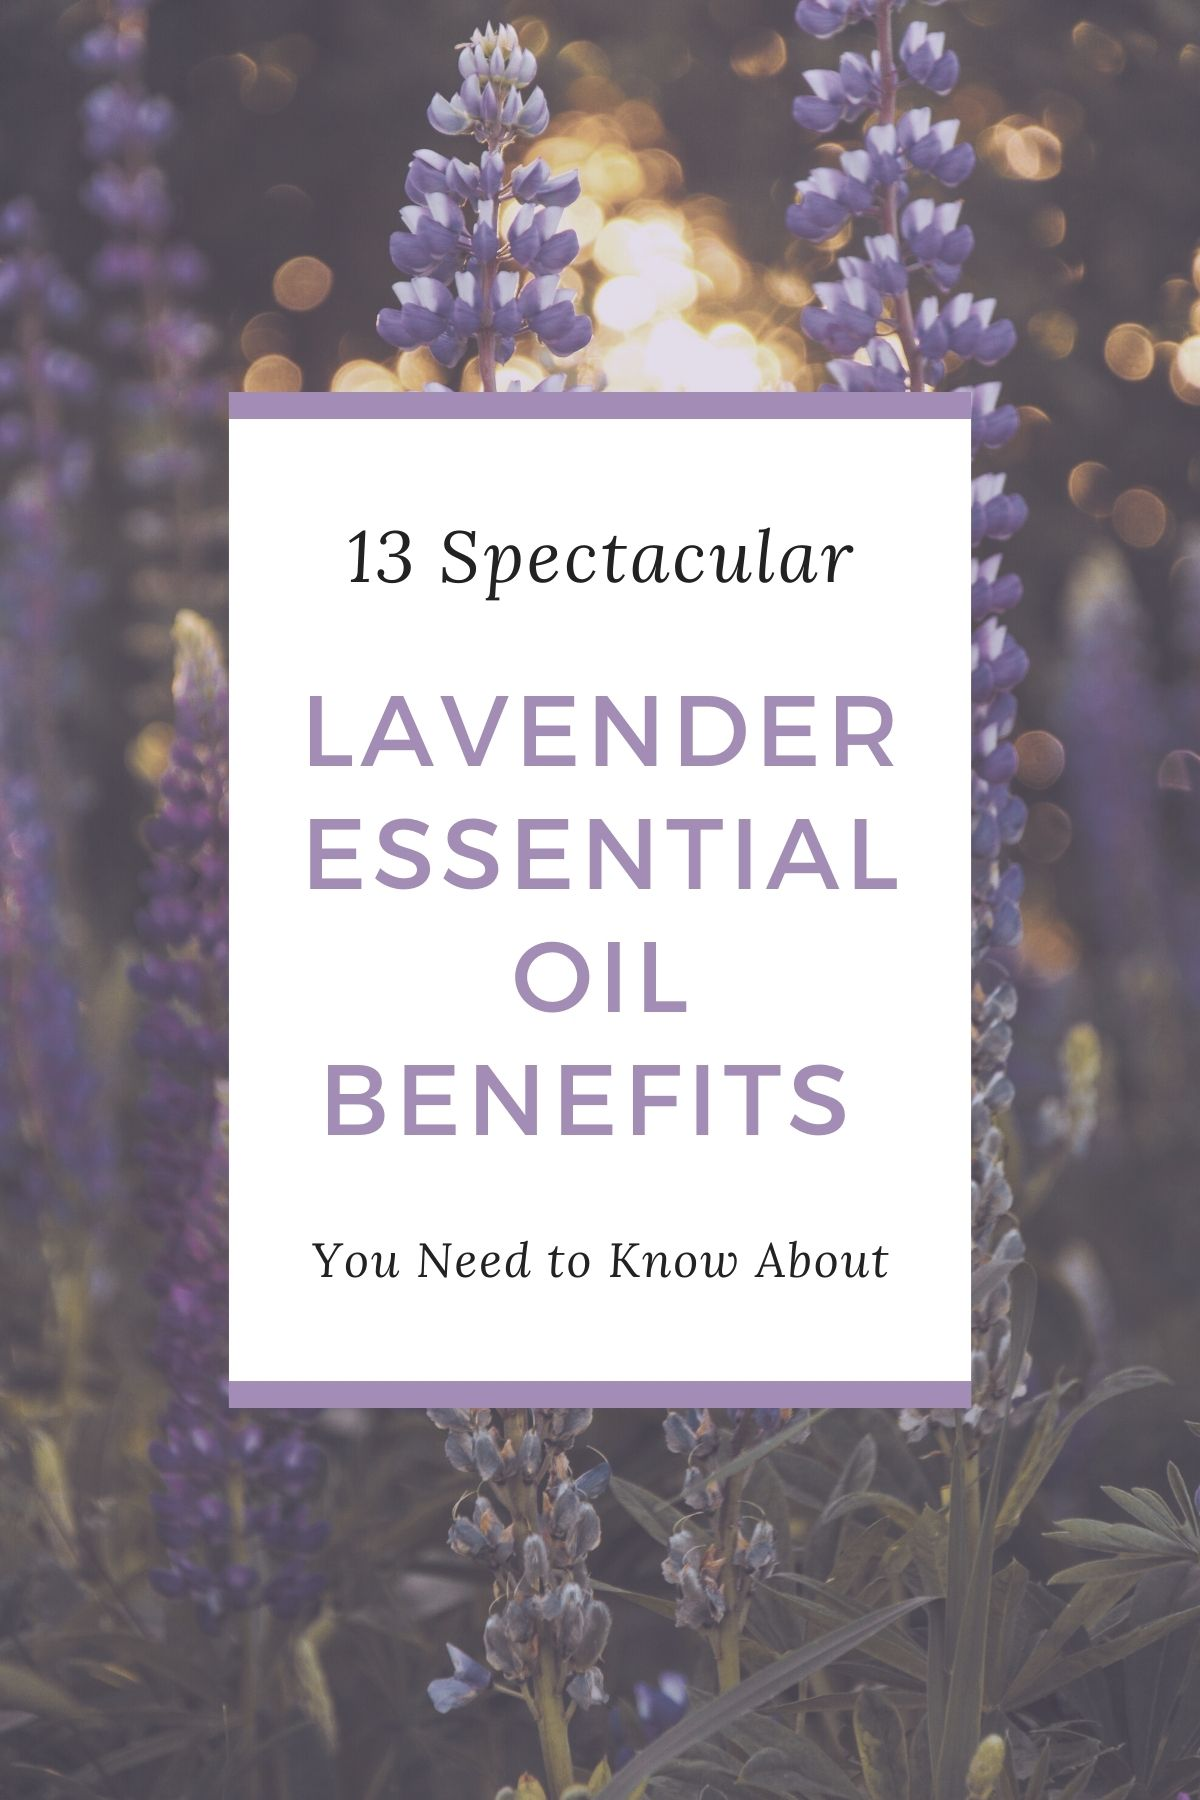 13 Spectacular Lavender Essential Oil Benefits You Need to Know About from Top US Lifestyle Blogger Tabitha Blue of Fresh Mommy Blog.   Lavender Essential Oil by popular Florida lifestyle blog, Fresh Mommy Blog: Pinterest image of Spark Naturals lavender essential oil benefits.